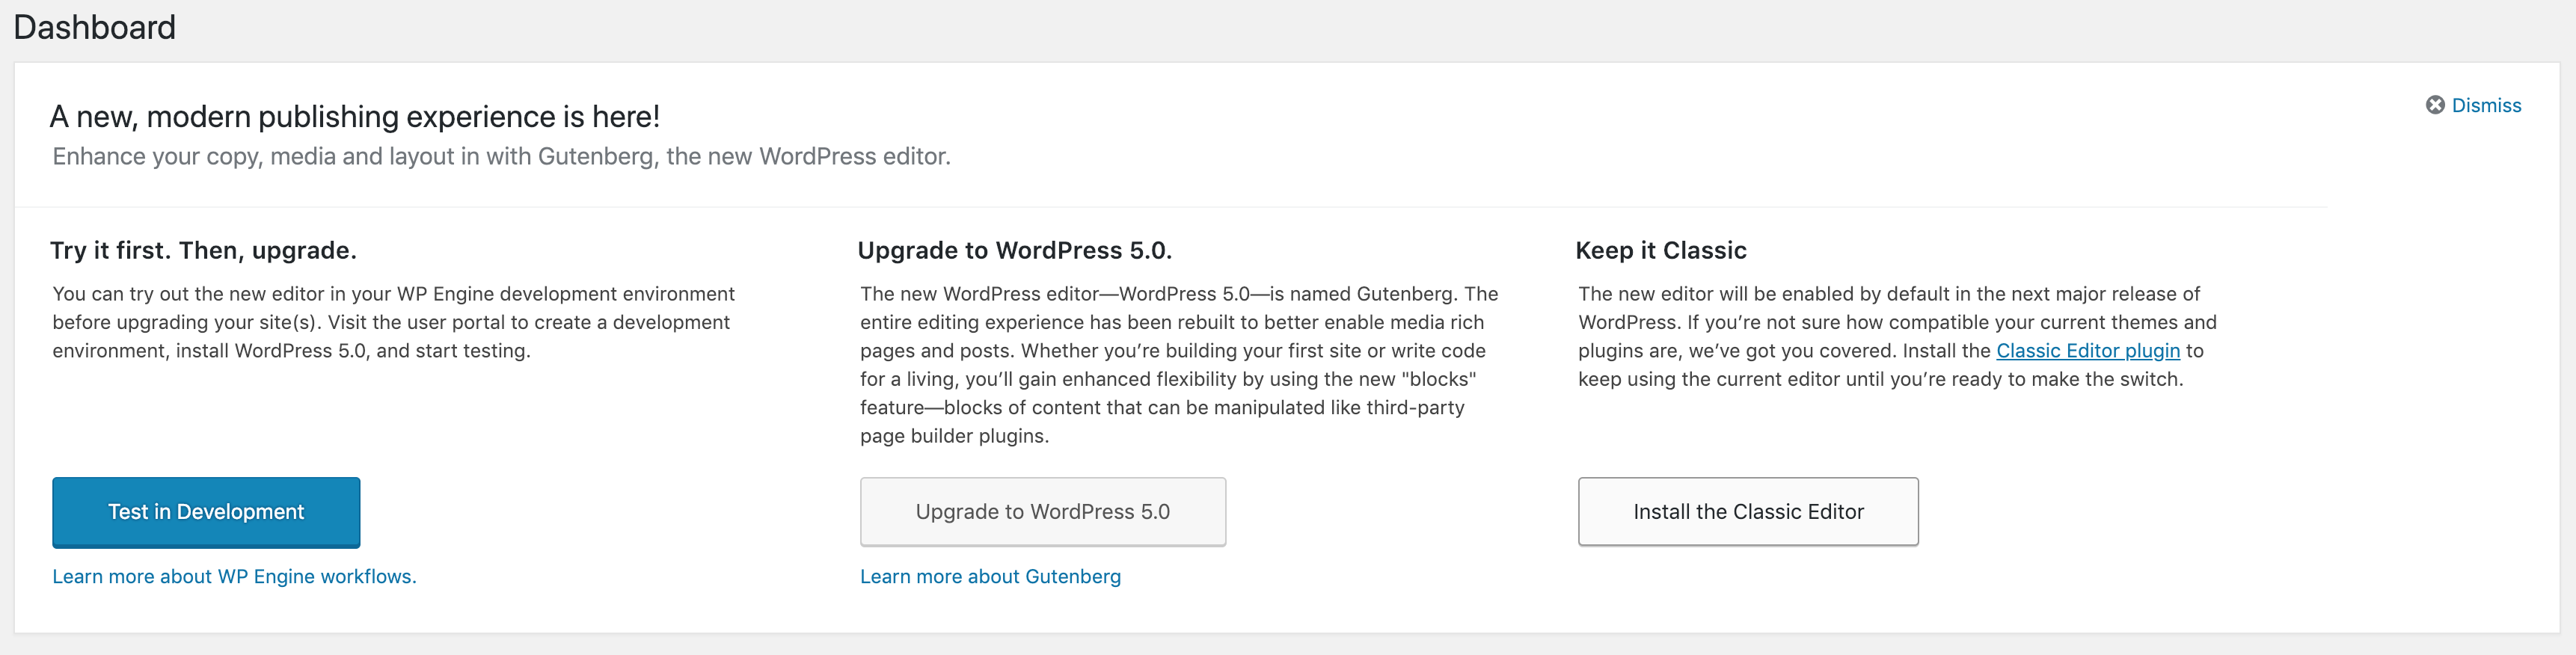 Customer Updates to WordPress 5.0